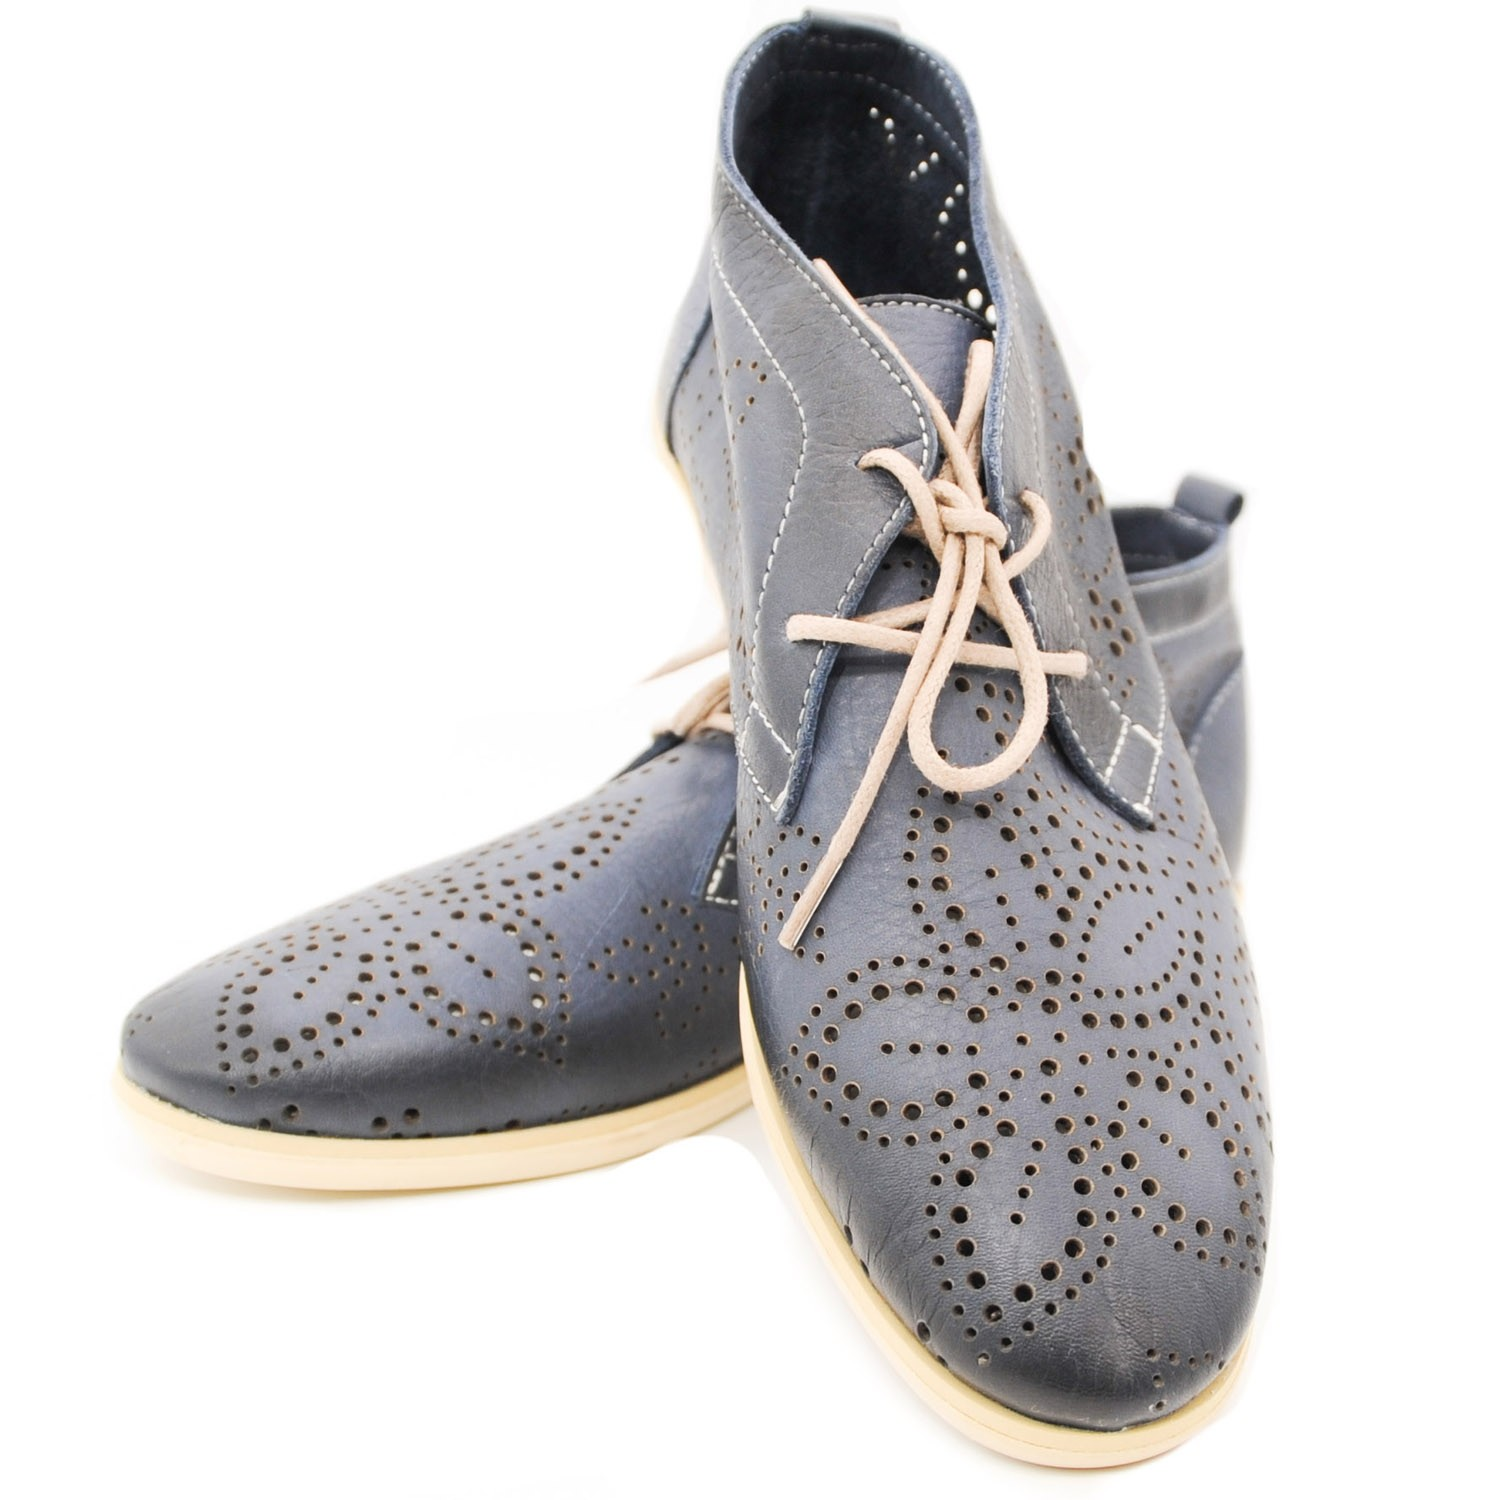 Ladies Stylish Blue Desert Flat Leather Shoes with Laces and Simple Pattern Effect